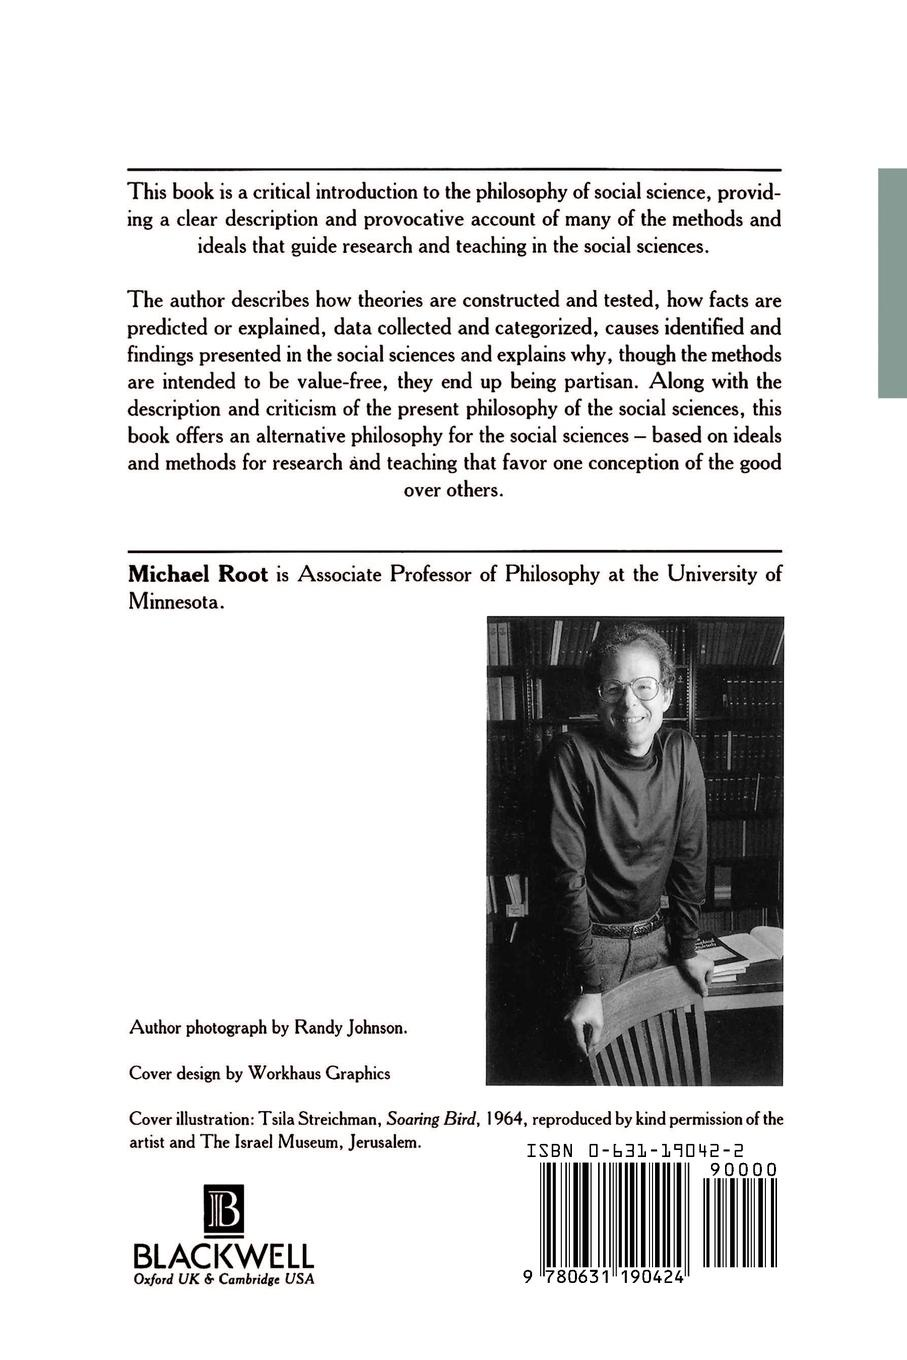 Michael Root Philosophy of Social Science. The Methods, Ideals, and Politics Inquiry